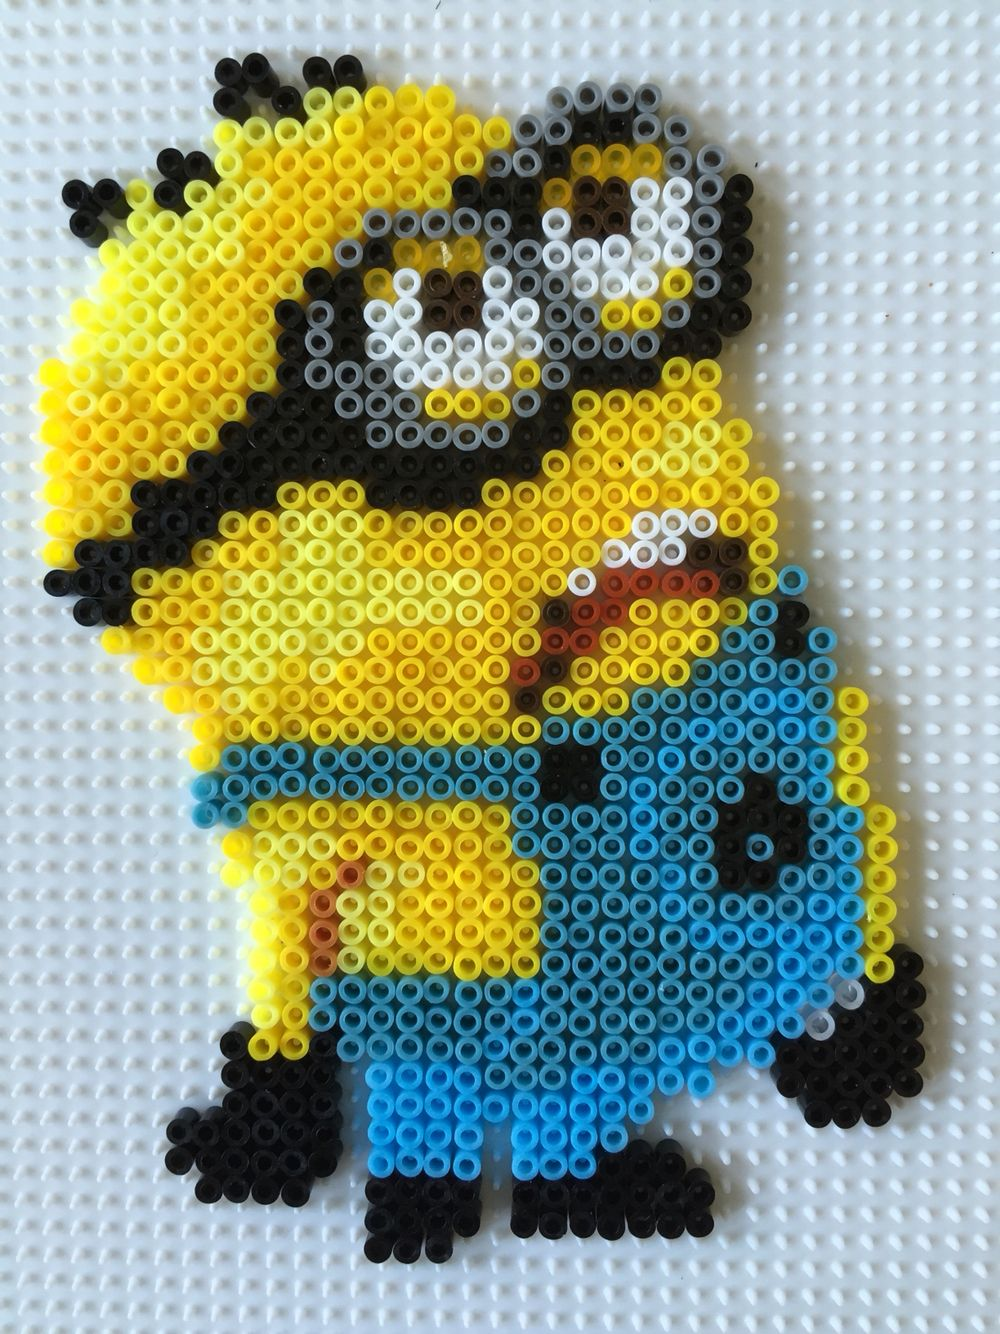 minion mini hama beads modified hama beads pinterest mini hama beads hama beads and beads. Black Bedroom Furniture Sets. Home Design Ideas